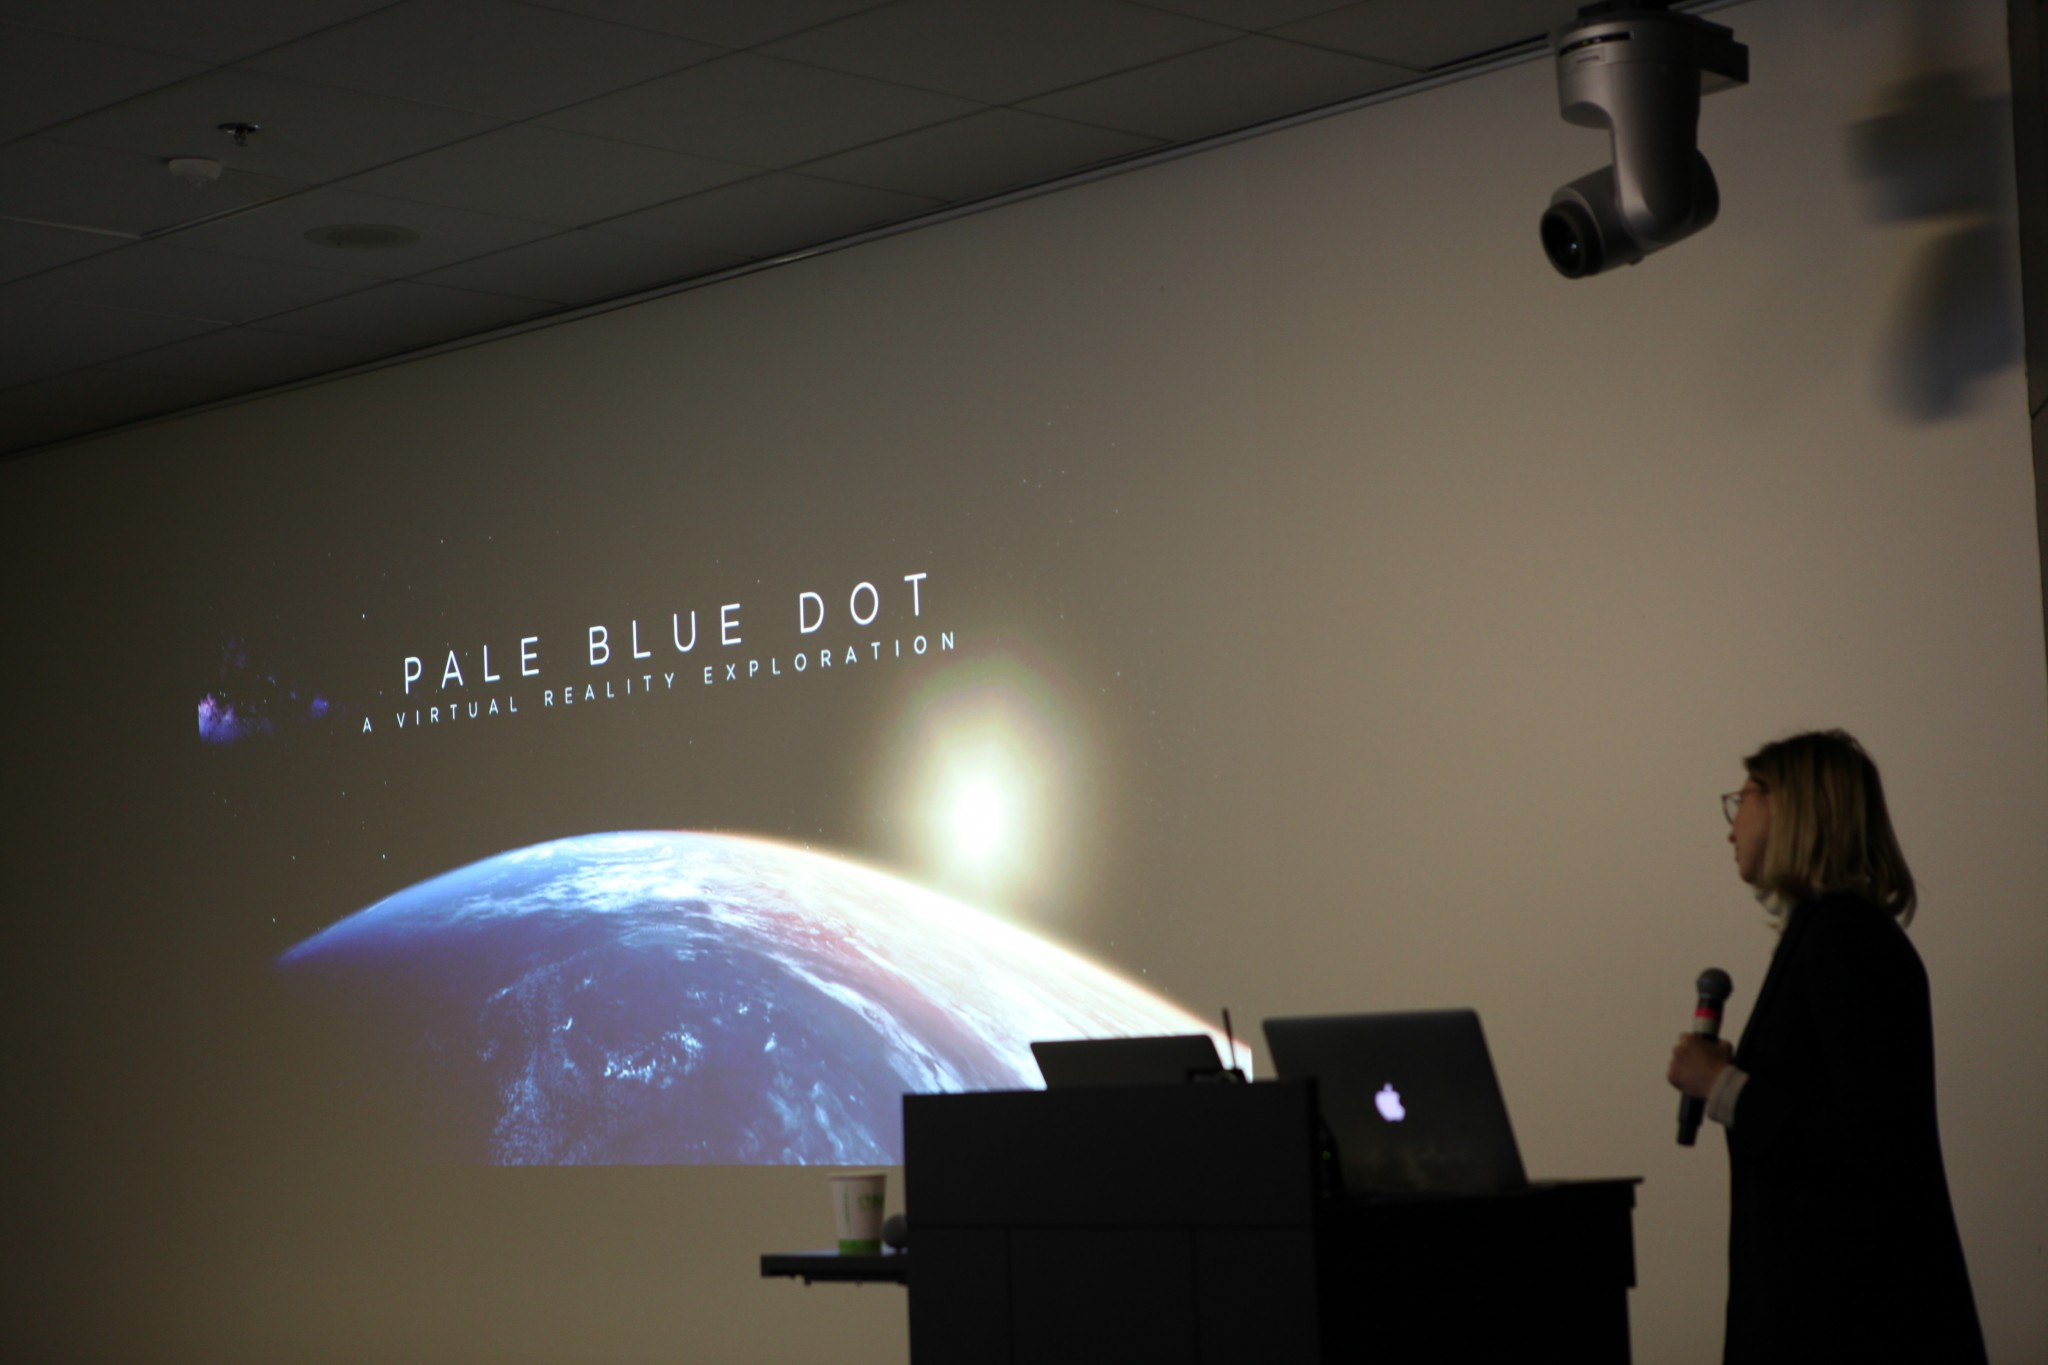 Creator Eliza McNitt introduces Pale Blue Dot.